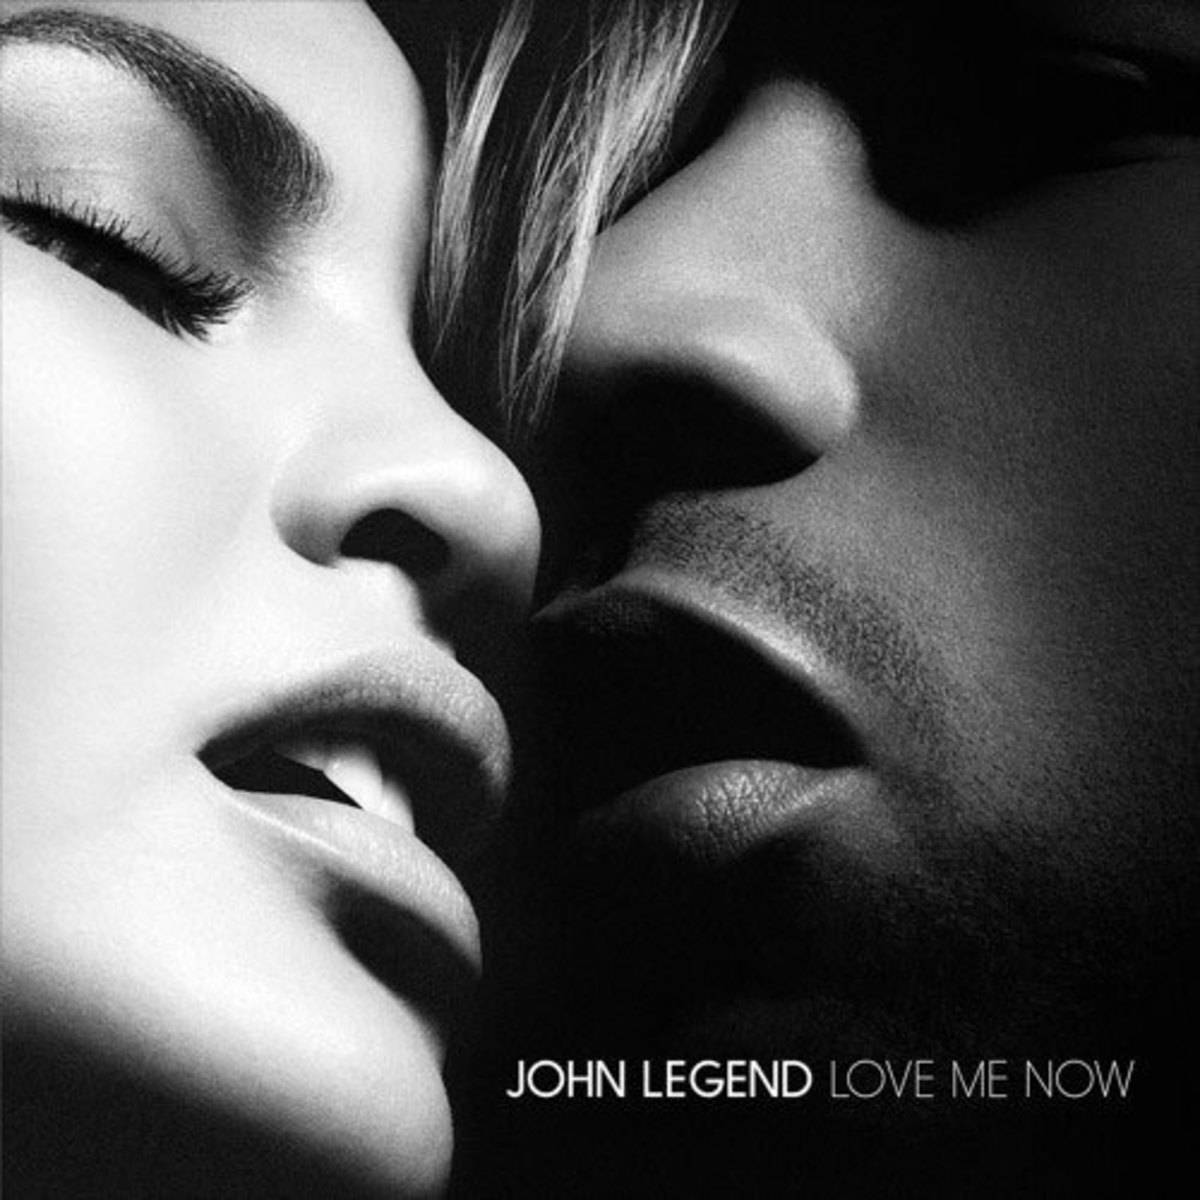 john-legend-love-me-now.jpg